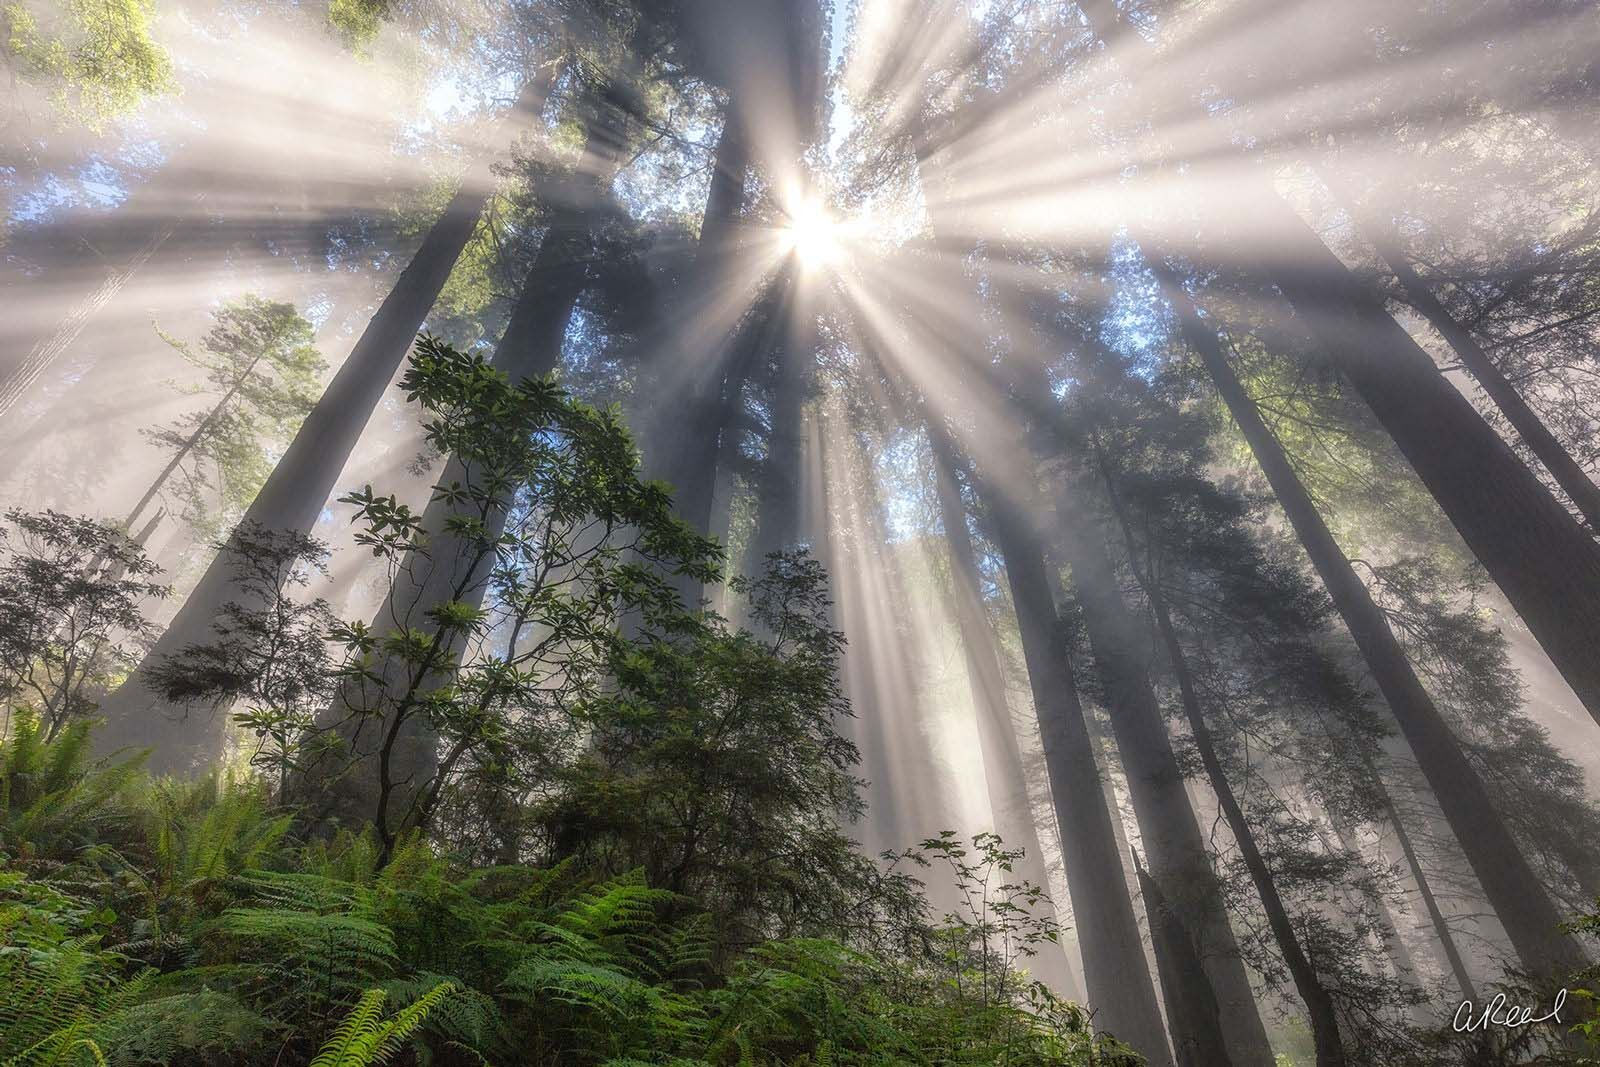 A photograph of tall redwood trees covered in fog with sunlight poking through above them.